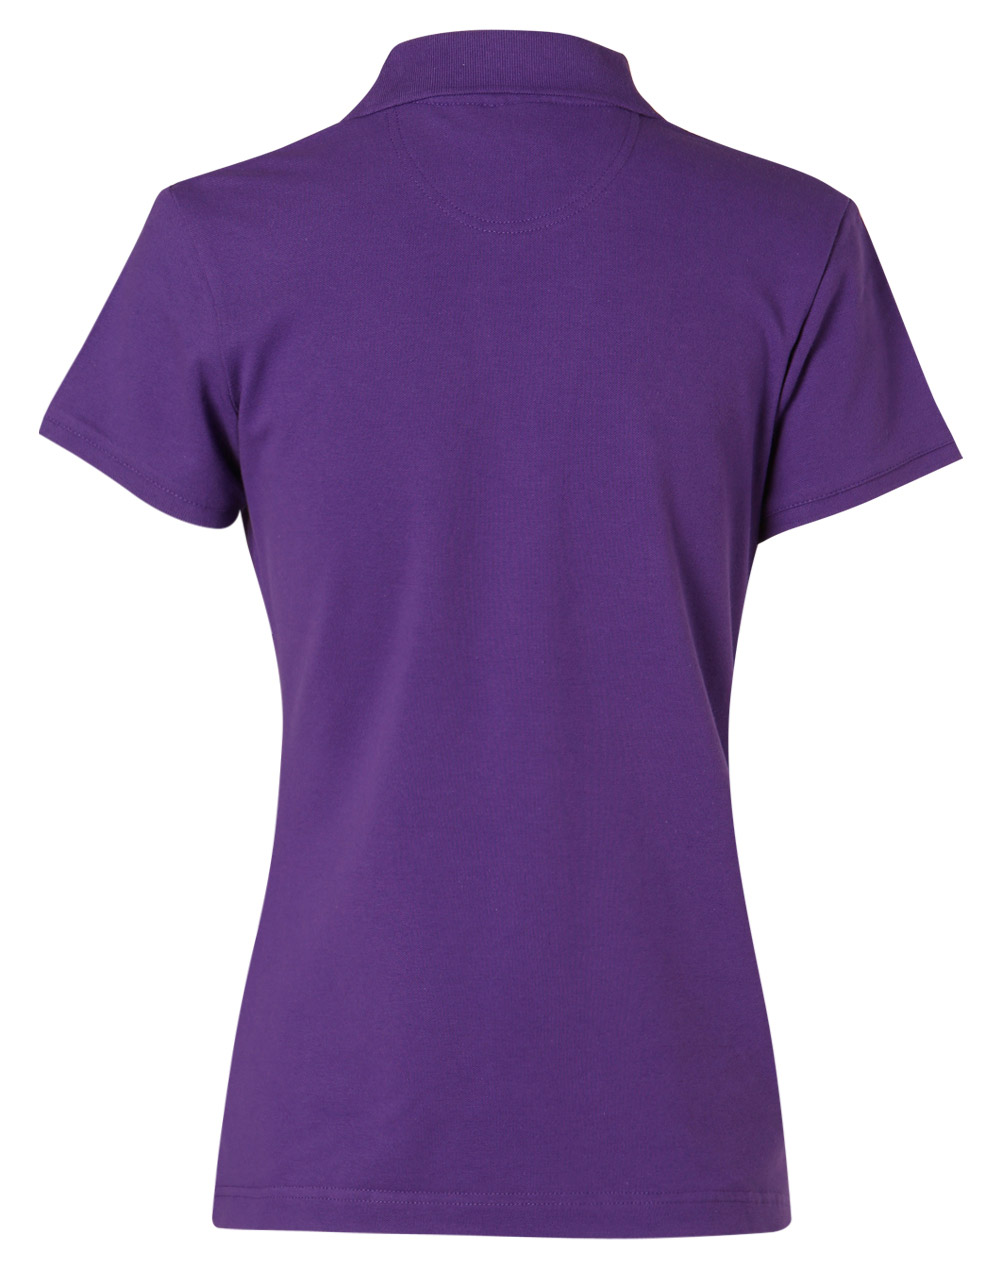 https://s3-ap-southeast-1.amazonaws.com/ws-imgs/POLOSHIRTS/PS40_Purple_back.jpg